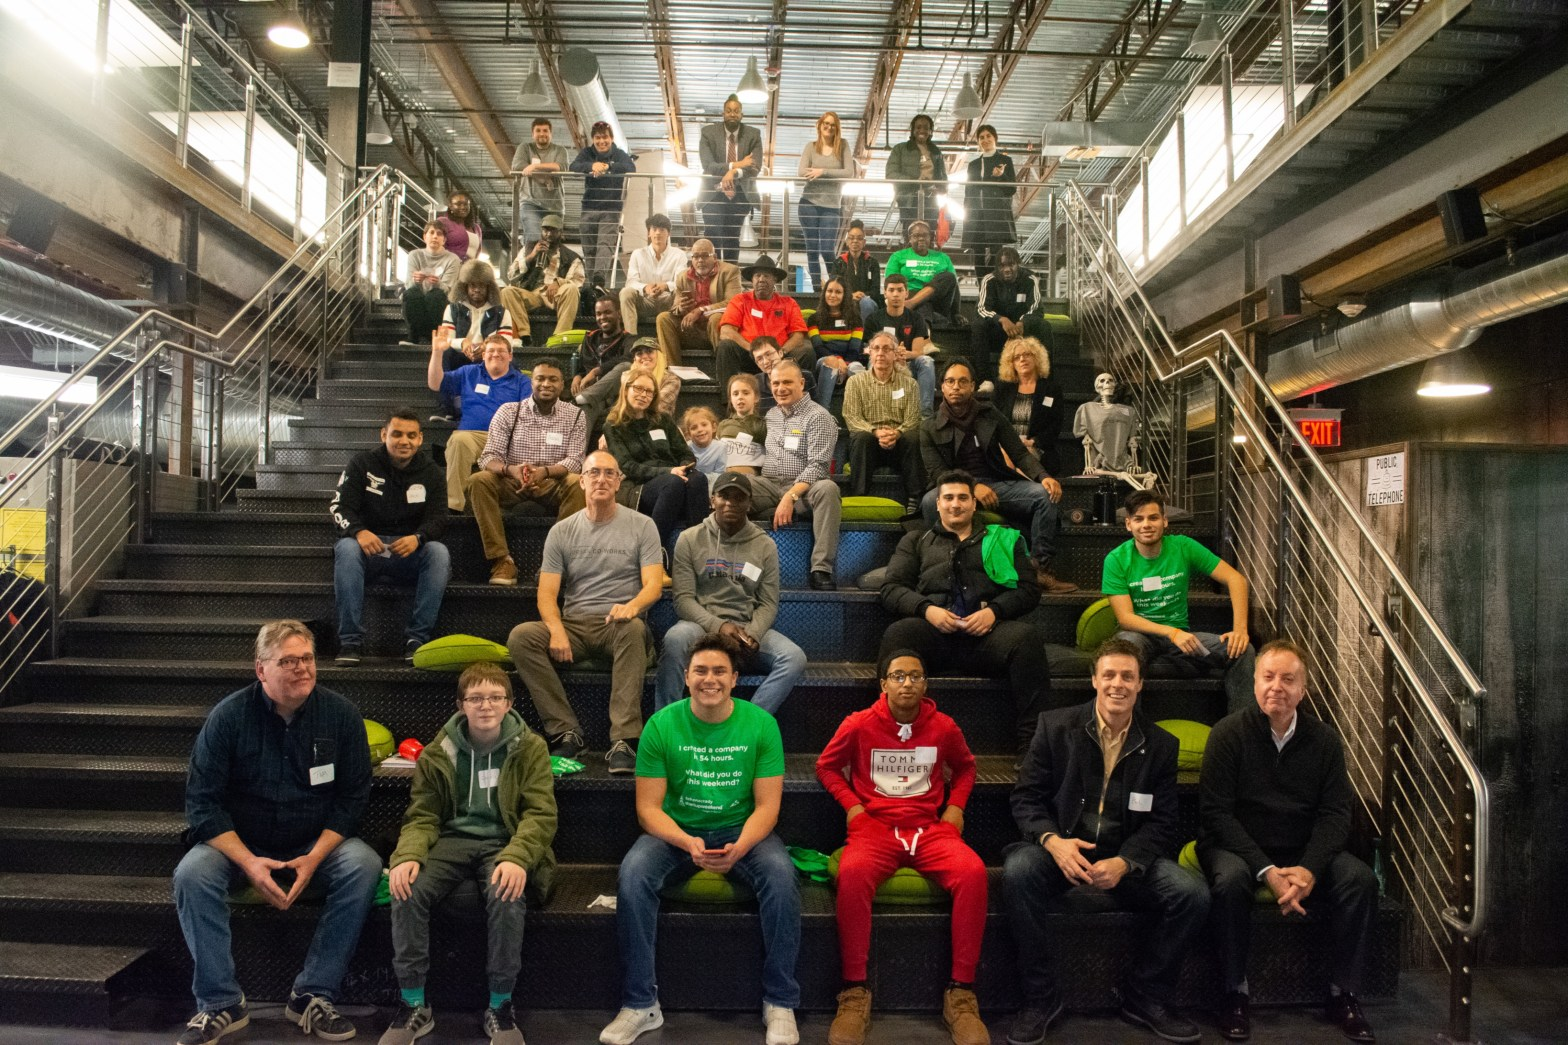 Photo of the over 50 participants in Techstars Startup Weekend Schenectady (SUWS) 2020, hosted @urban Co-works